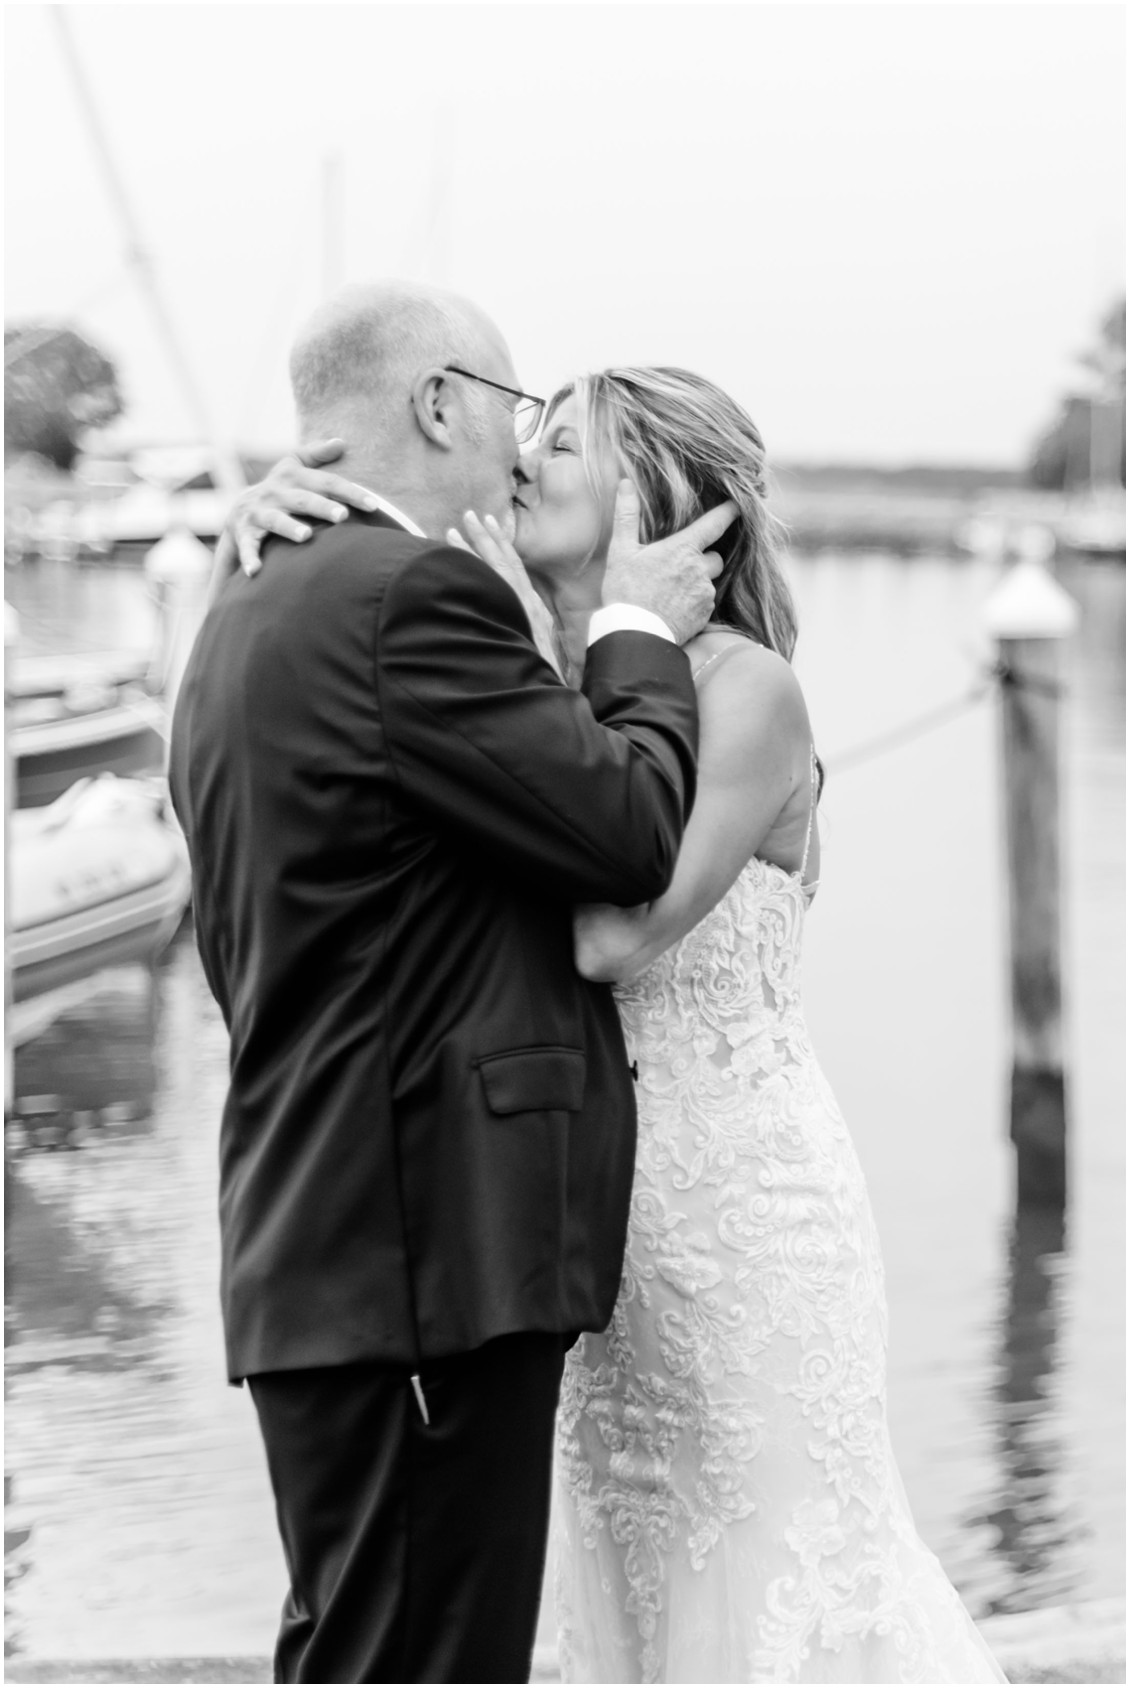 Bride and groom romantic elopement first kiss | My Eastern Shore Wedding | Alexandra Kent Photography | Chesapeake Blooms